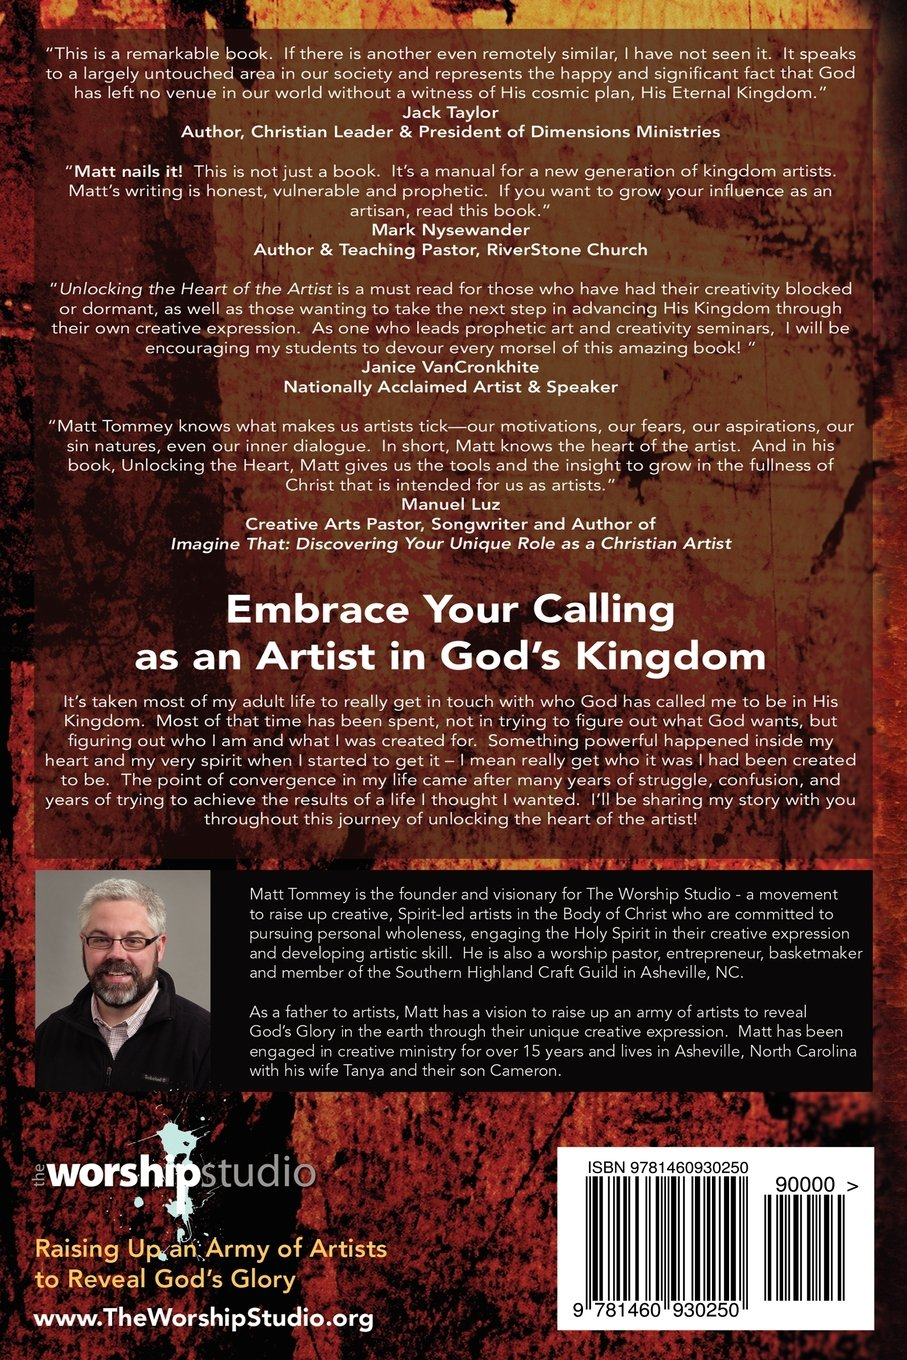 Unlocking The Heart Of The Artist: A Practical Guide To Fulfilling Your  Creative Call As An Artist In The Kingdom: Matt Tommey: 9781460930250:  Amazon: